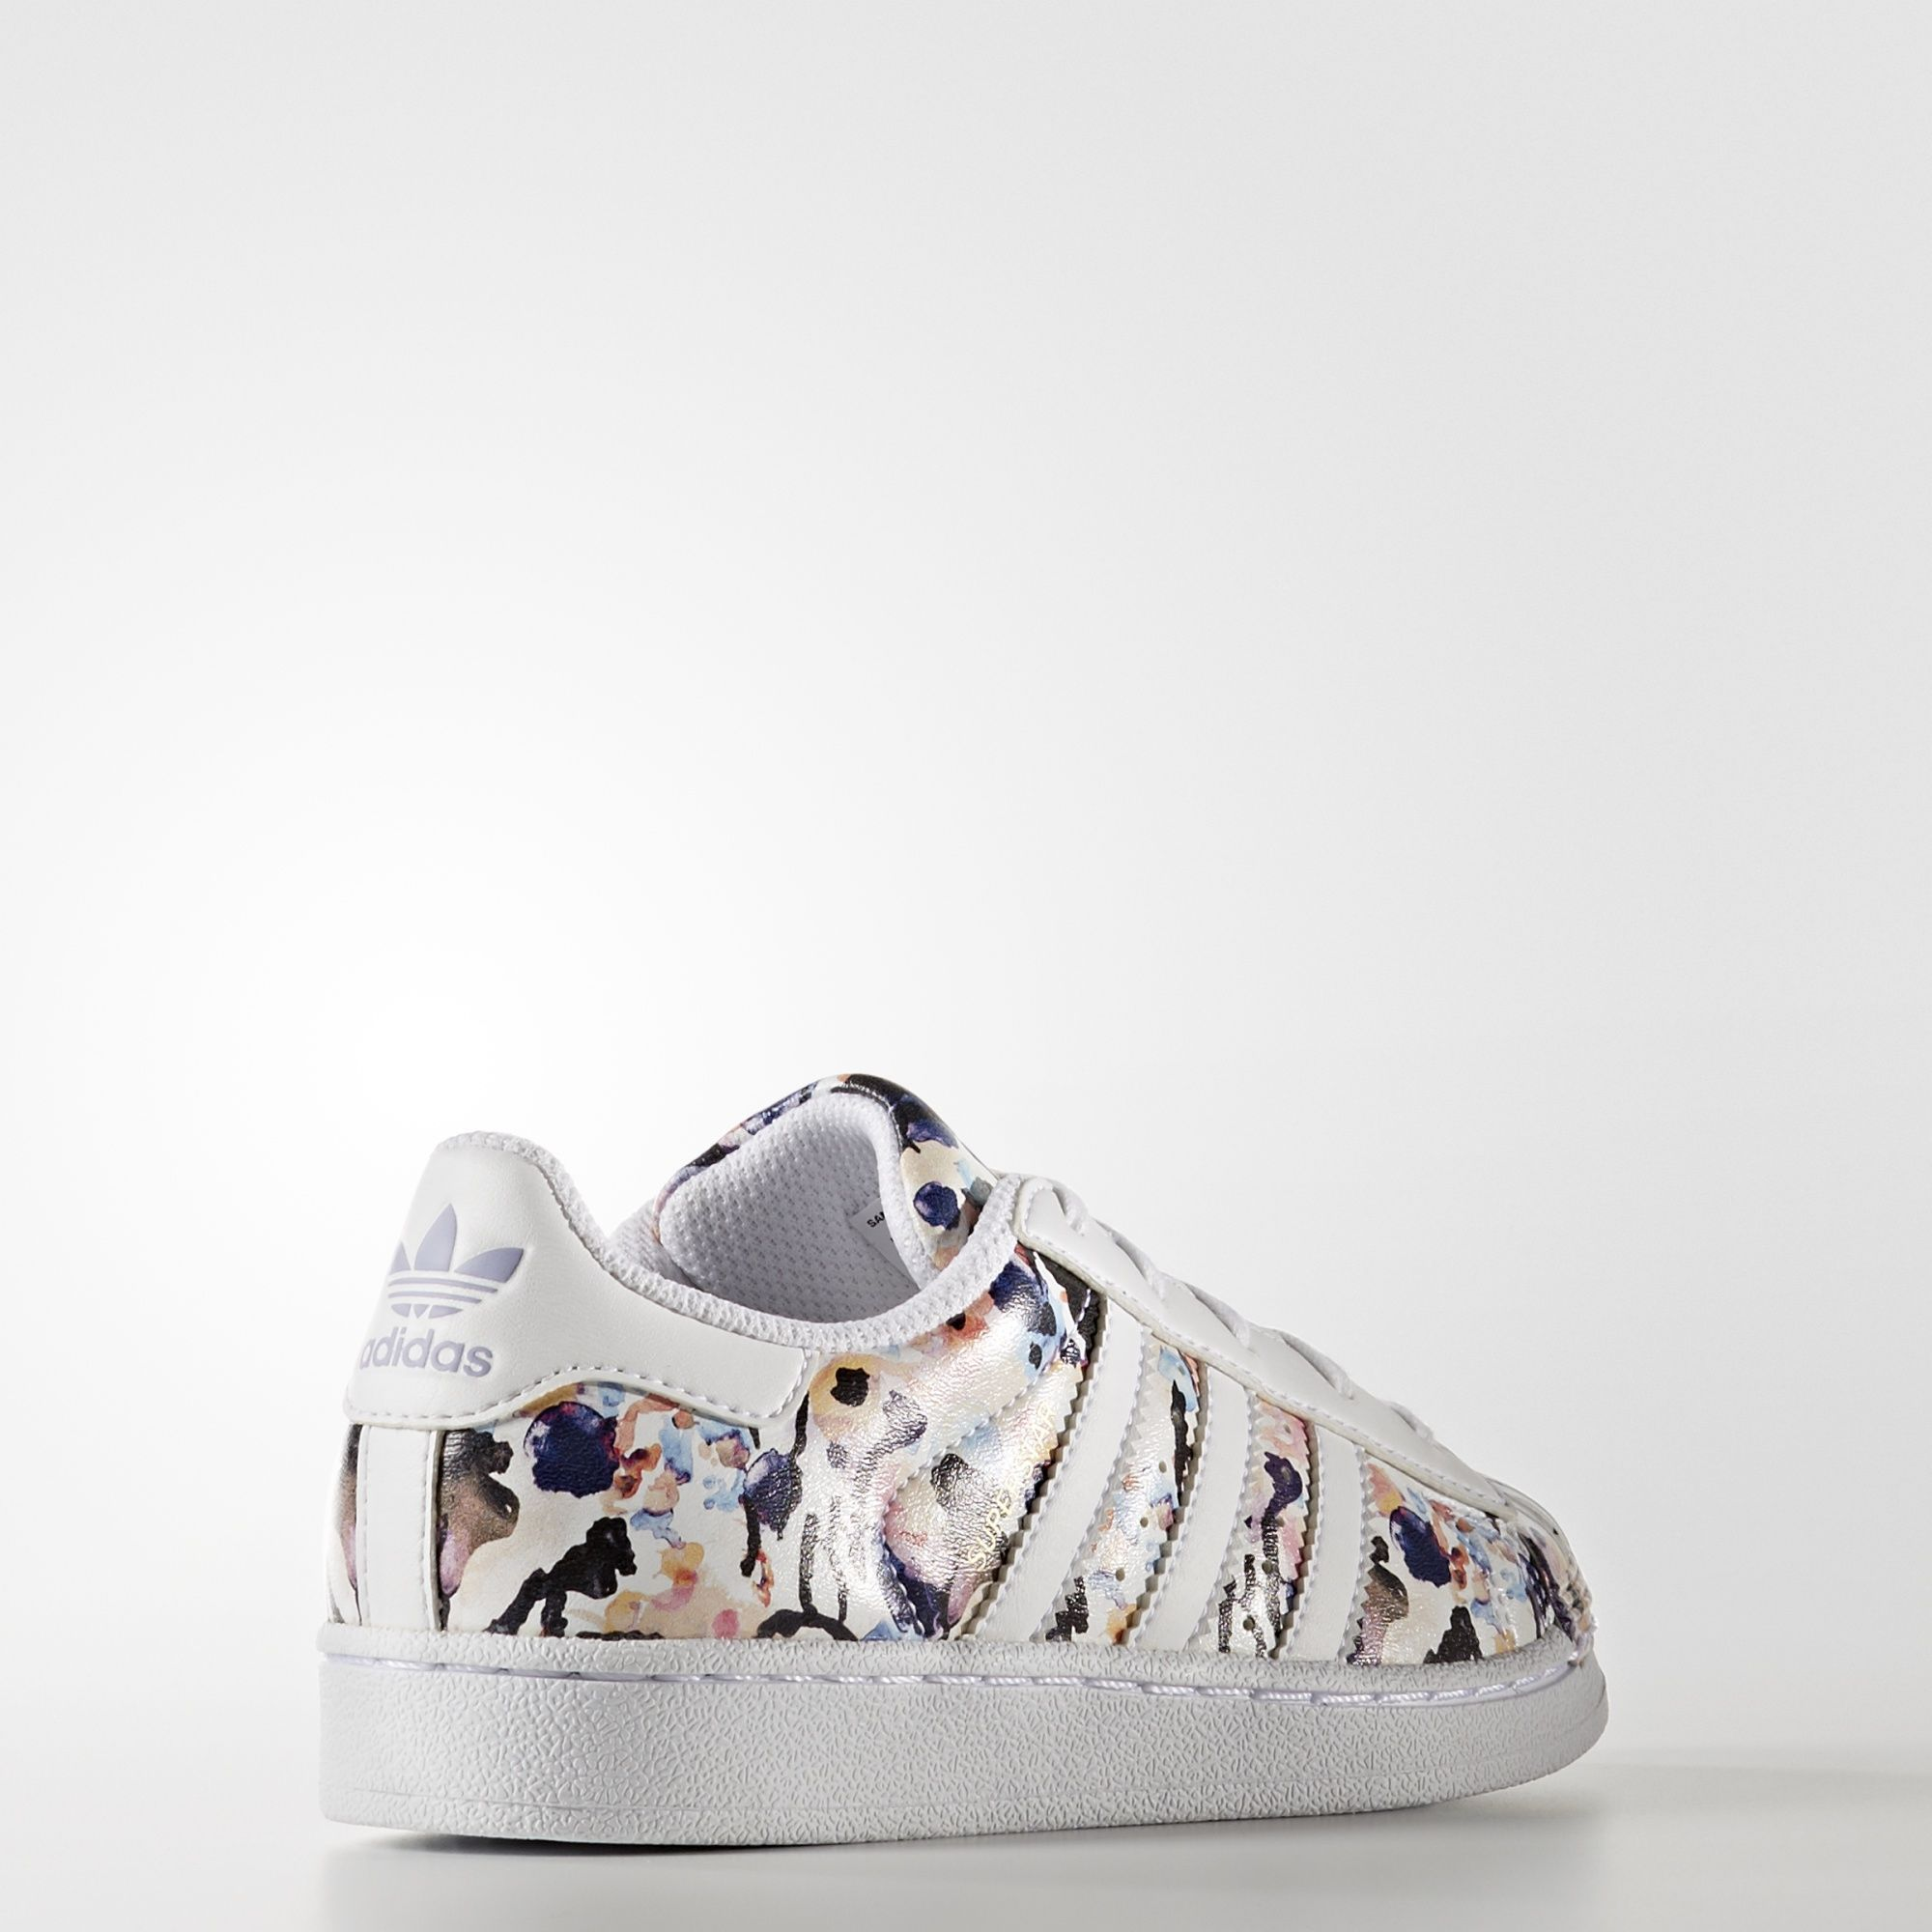 adidas superstar zapatillas niño